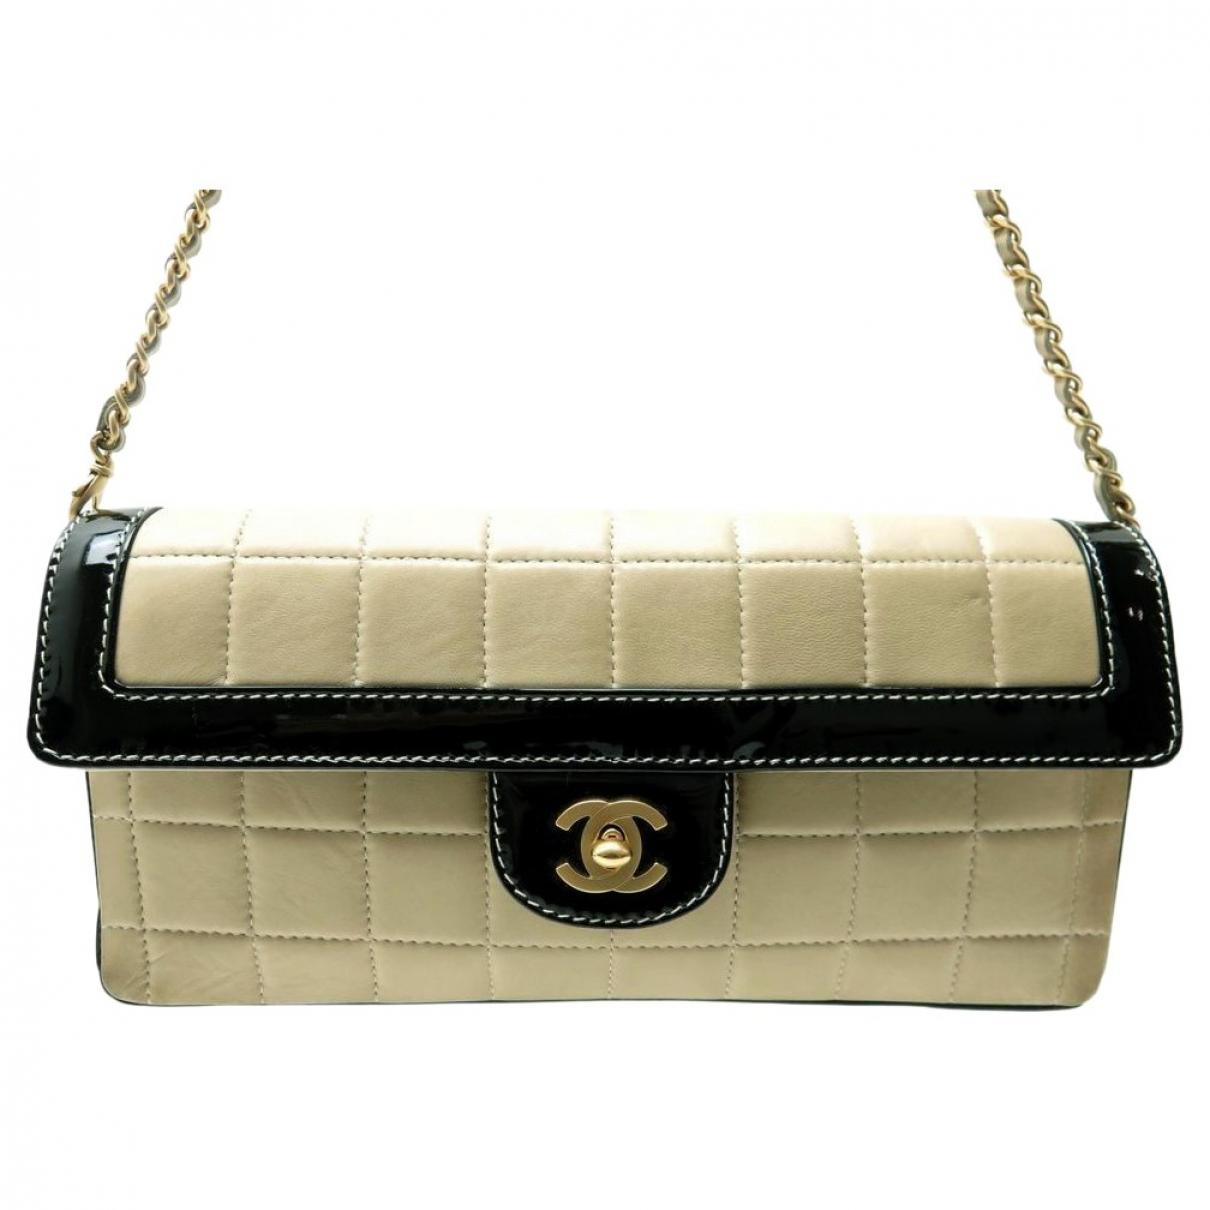 1fc2ad186747 Lyst - Chanel Pre-owned Vintage East West Chocolate Bar Multicolour ...